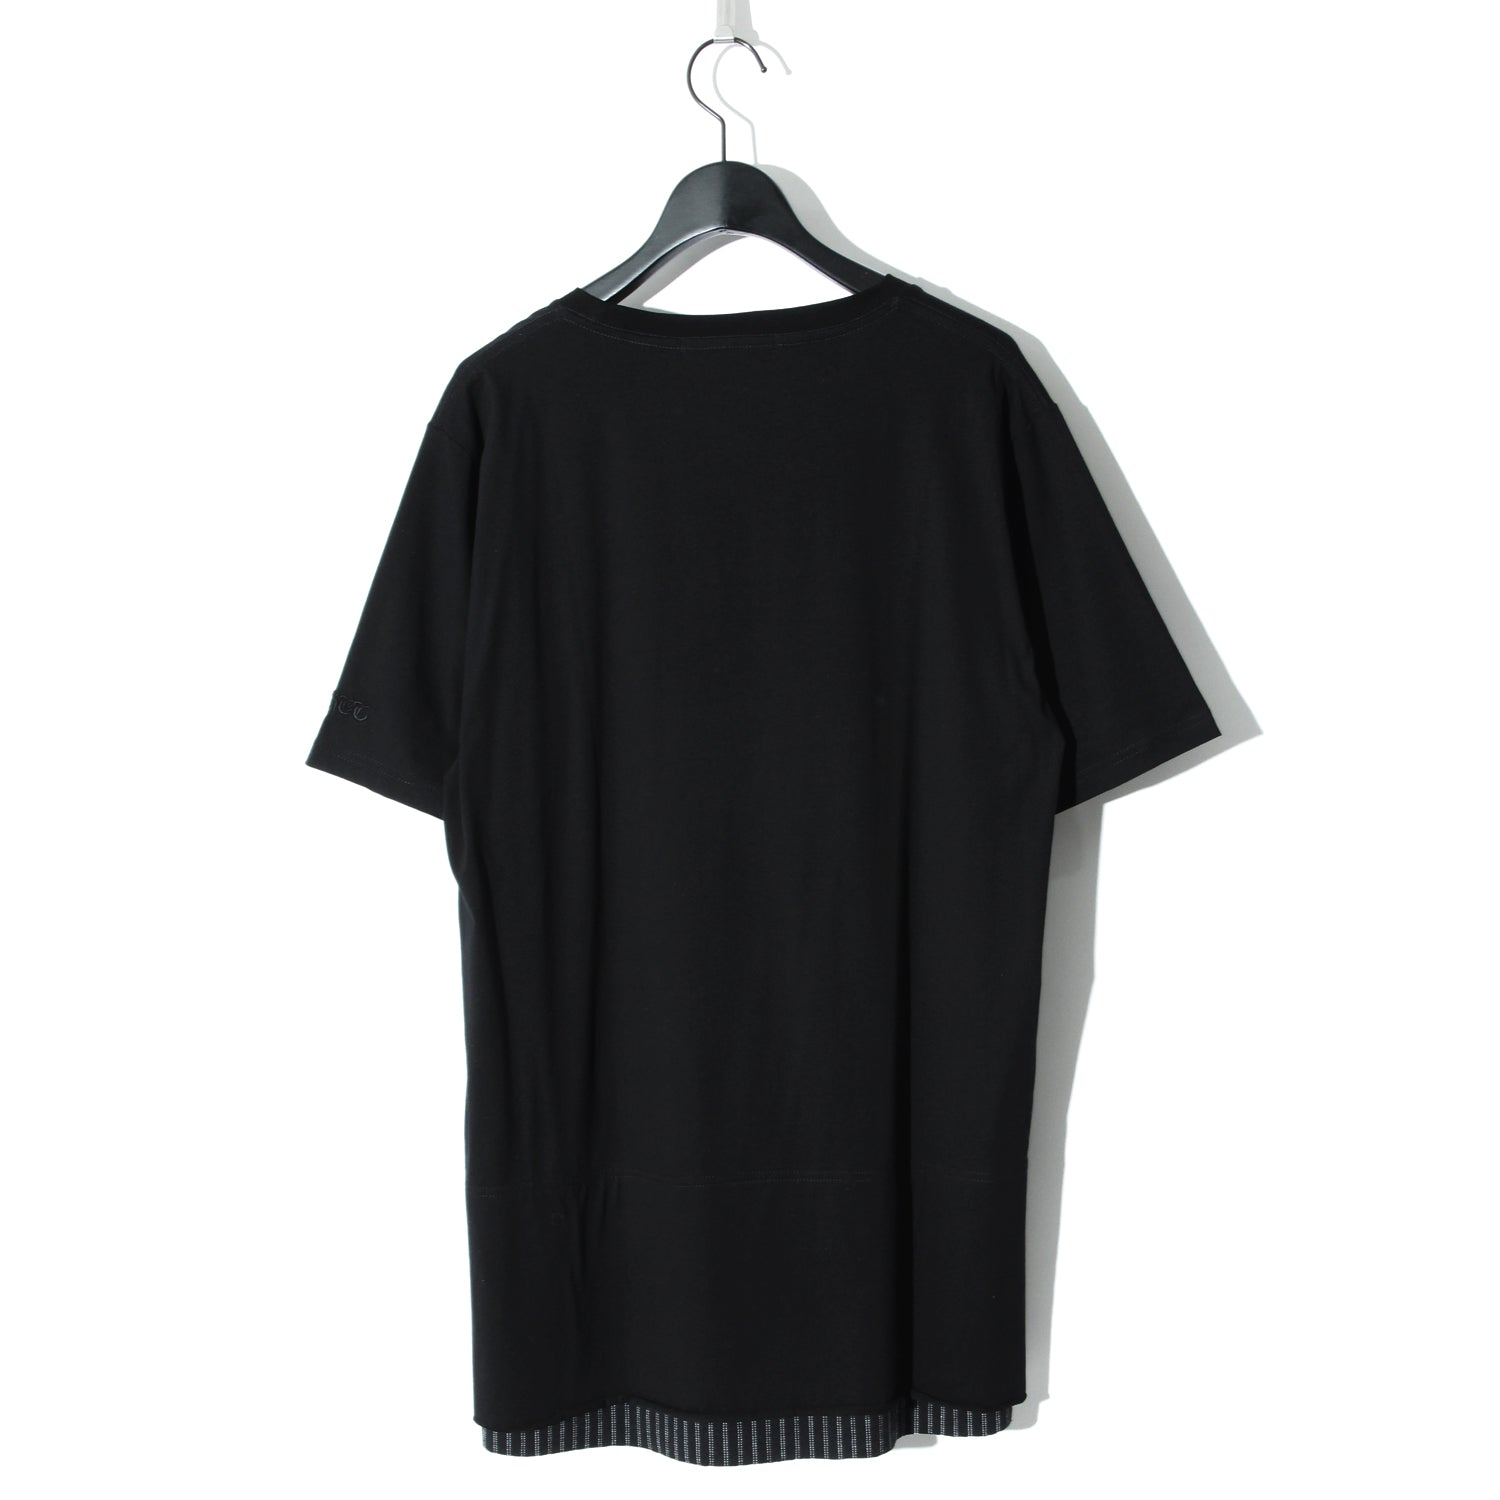 【予約商品】Kittyface Tee / BLACK